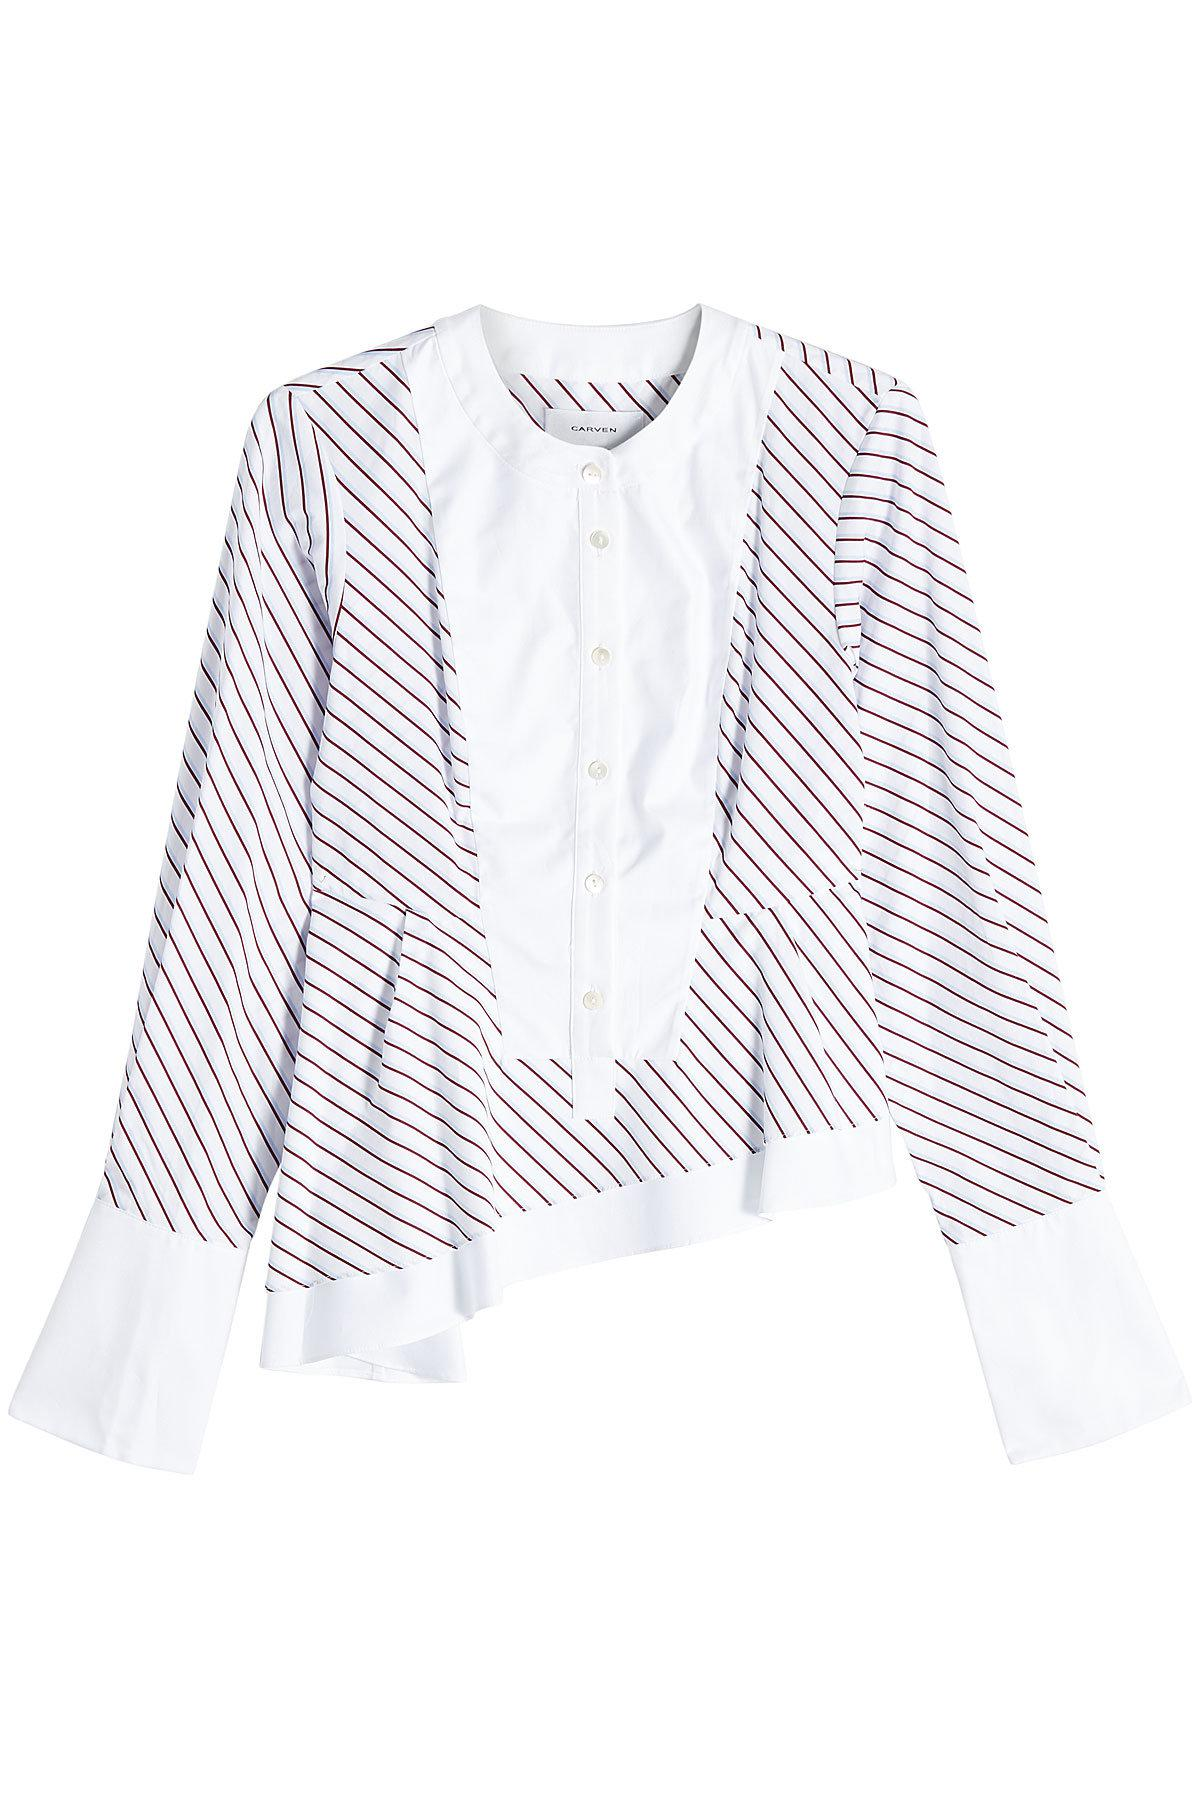 Quality Cheap Largest Supplier Carven Woman Embellished Cotton-blend Jacquard Top Off-white Size XS Carven mgEcMrqZf